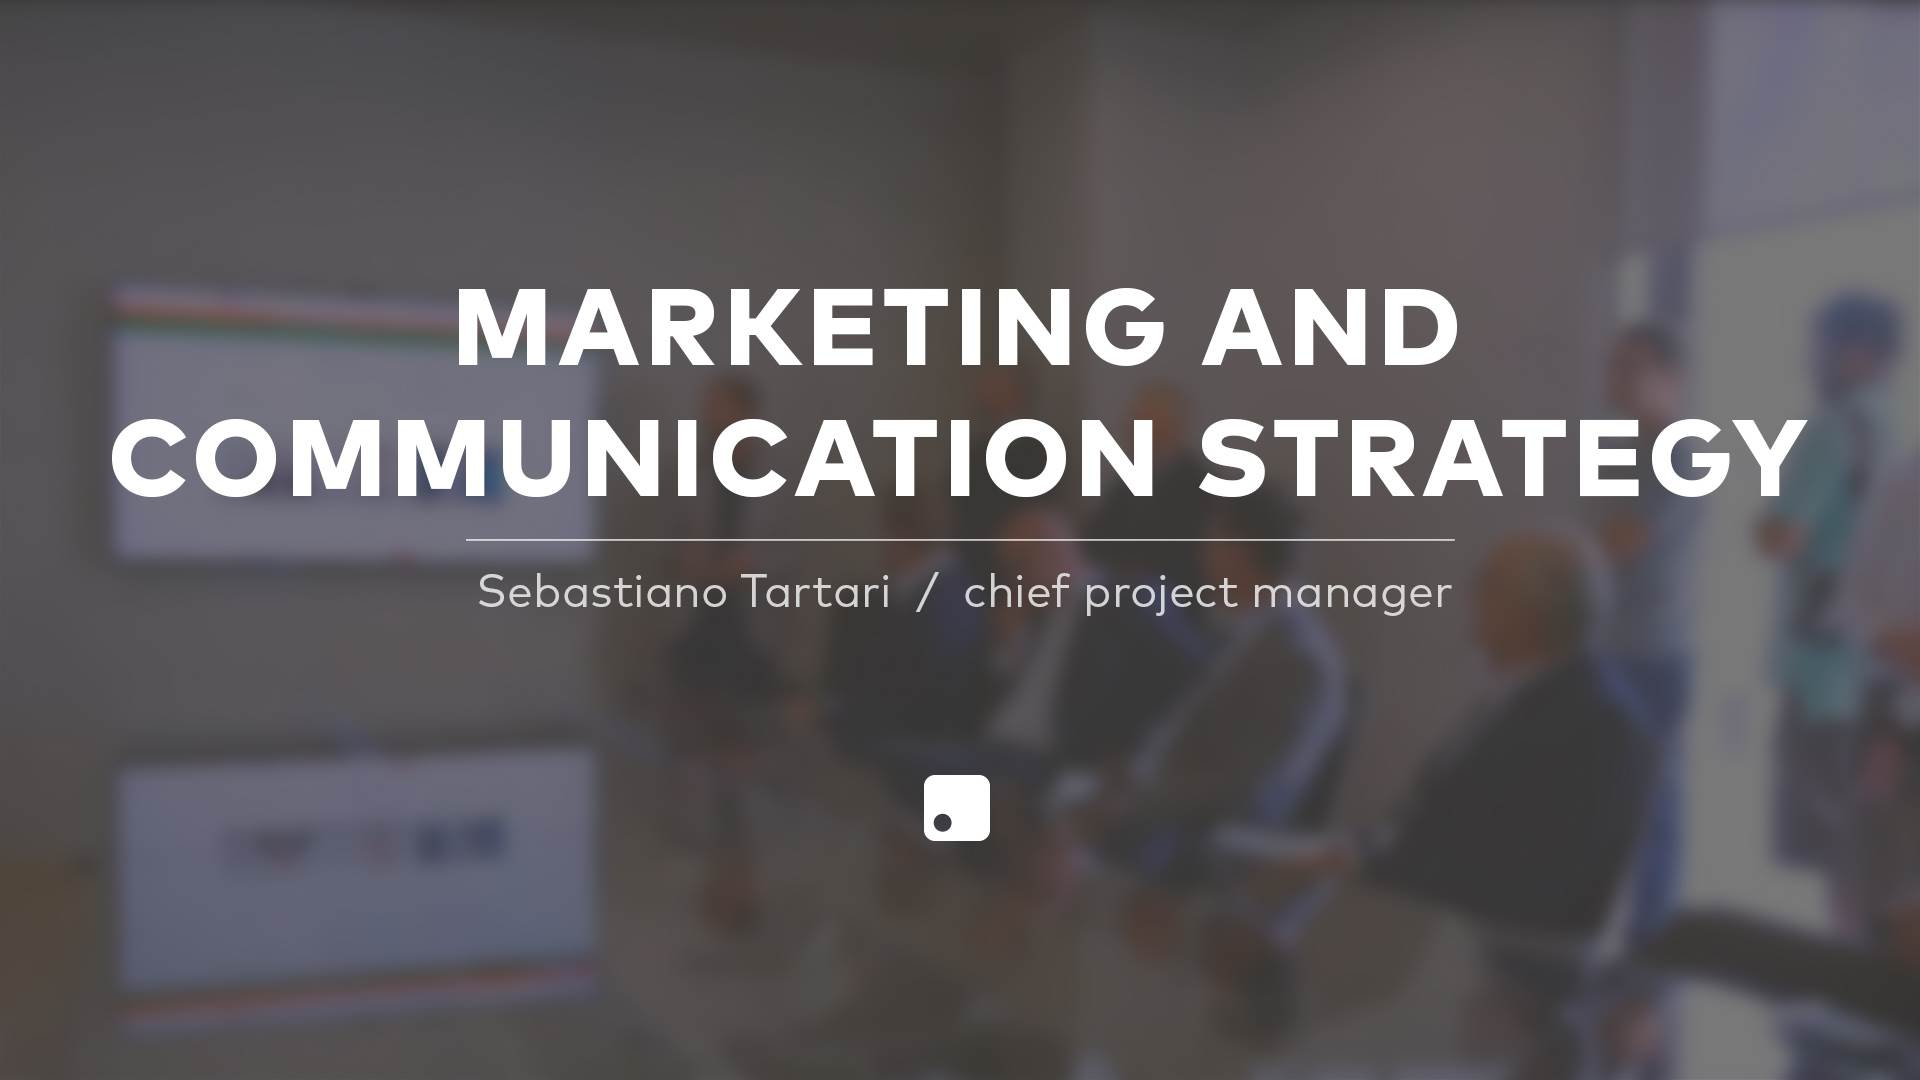 Marketing and Communication Strategy